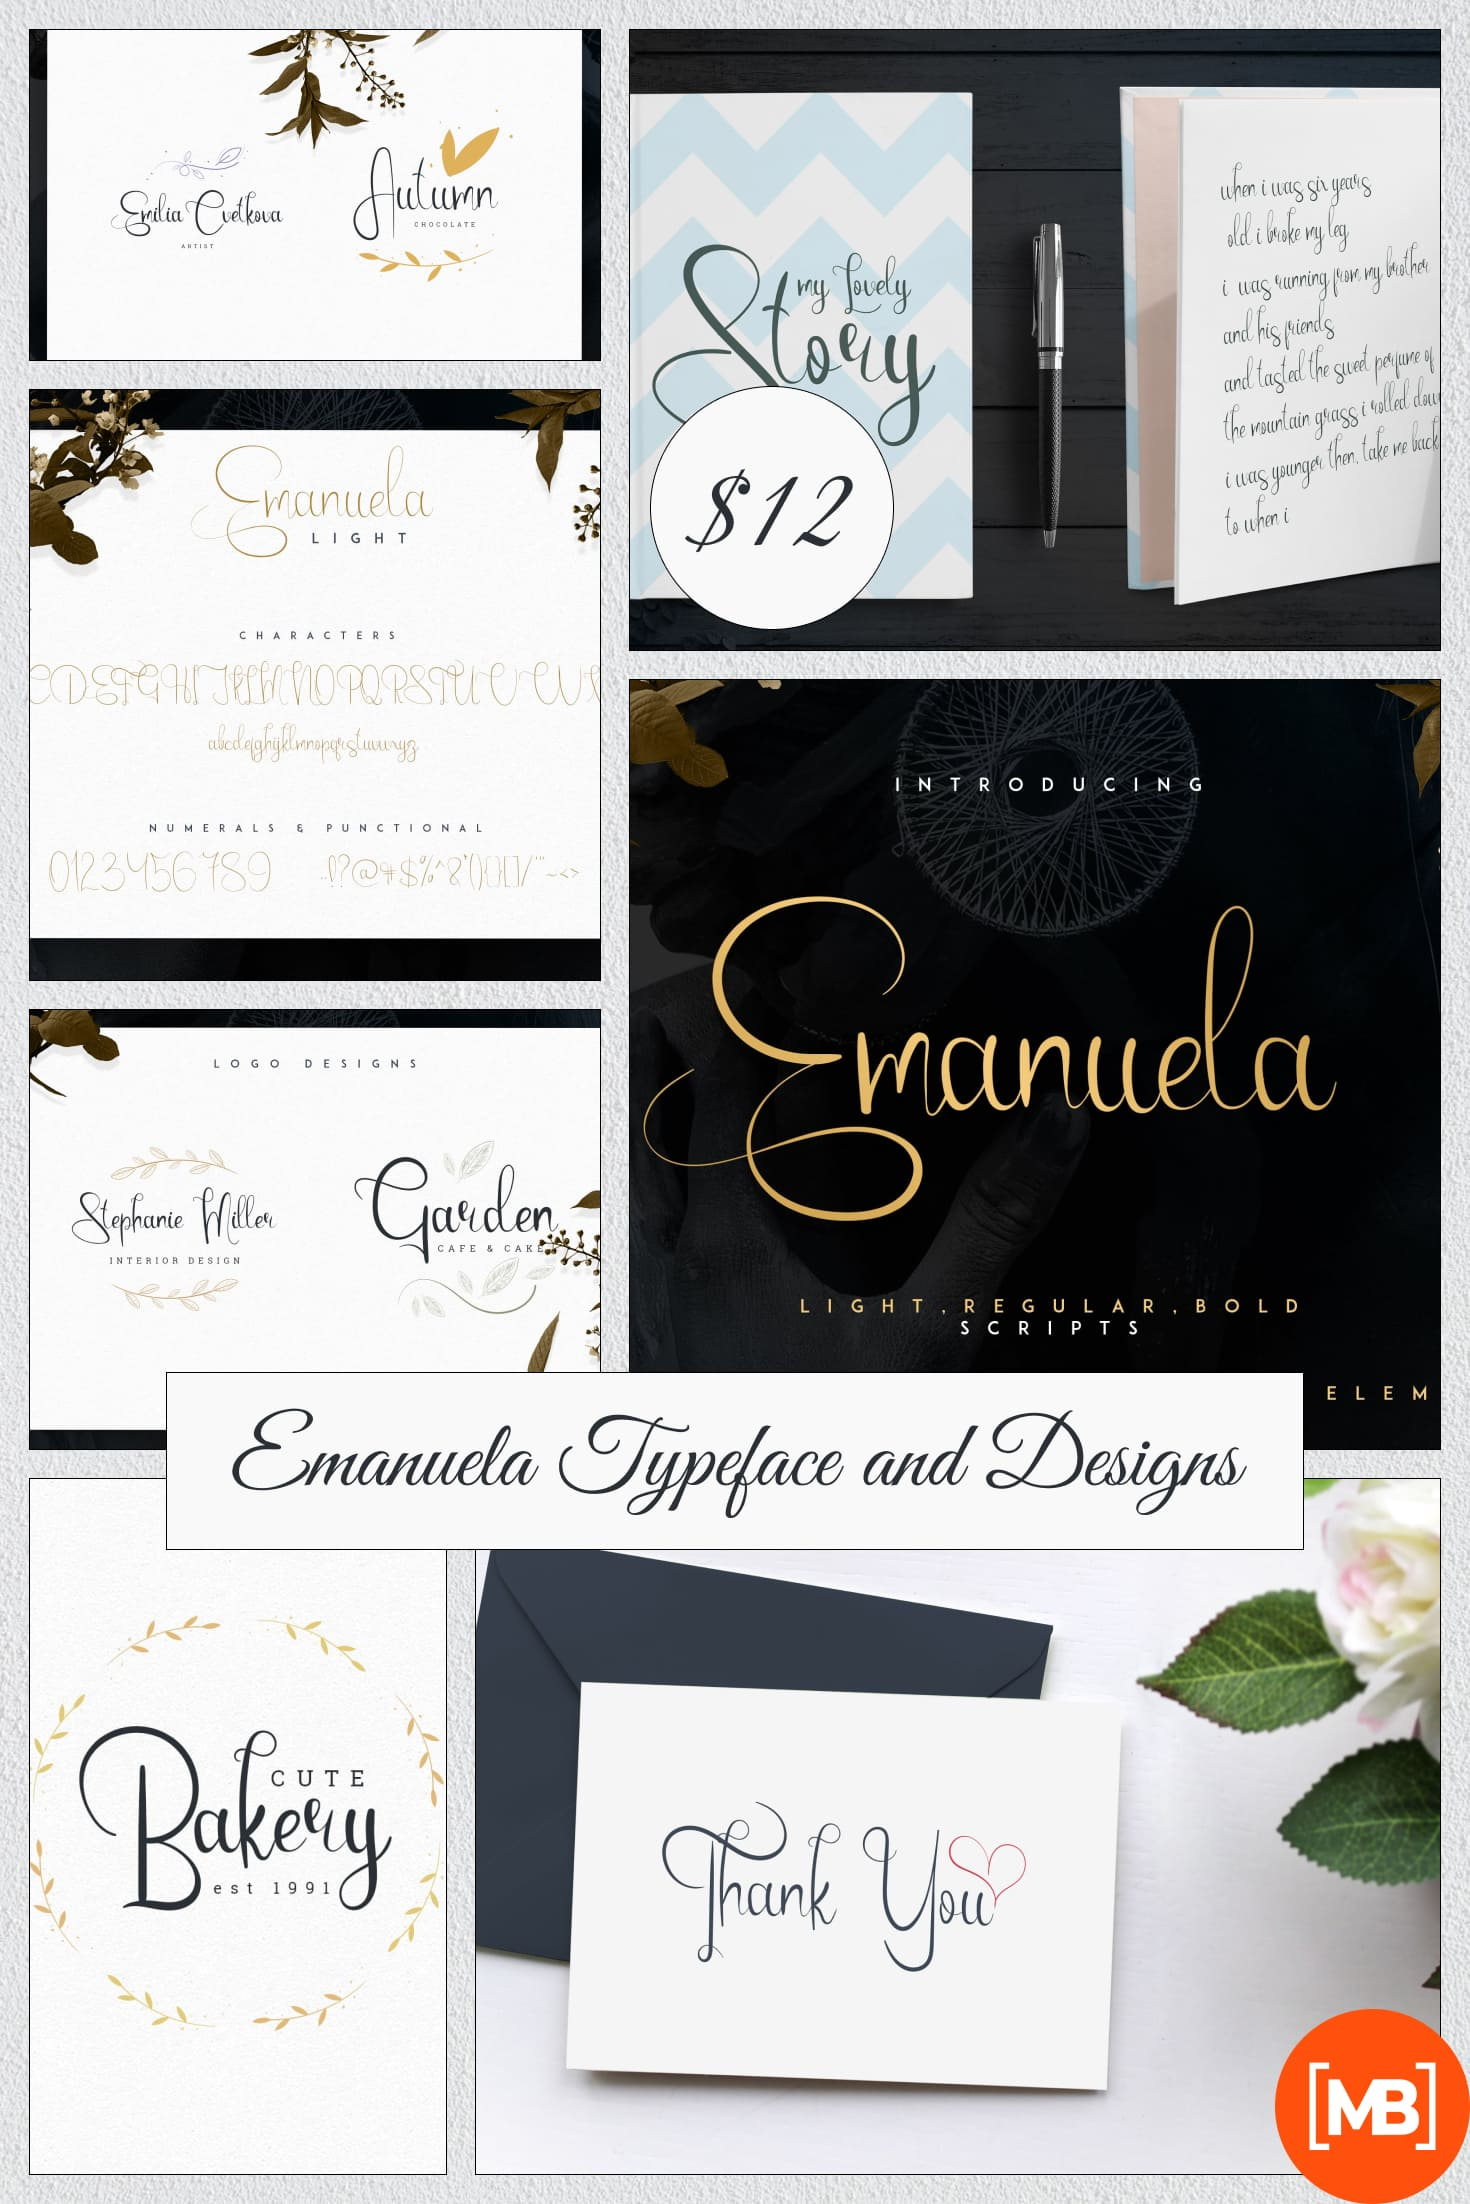 Emanuela Typeface and Designs. Collage Image.